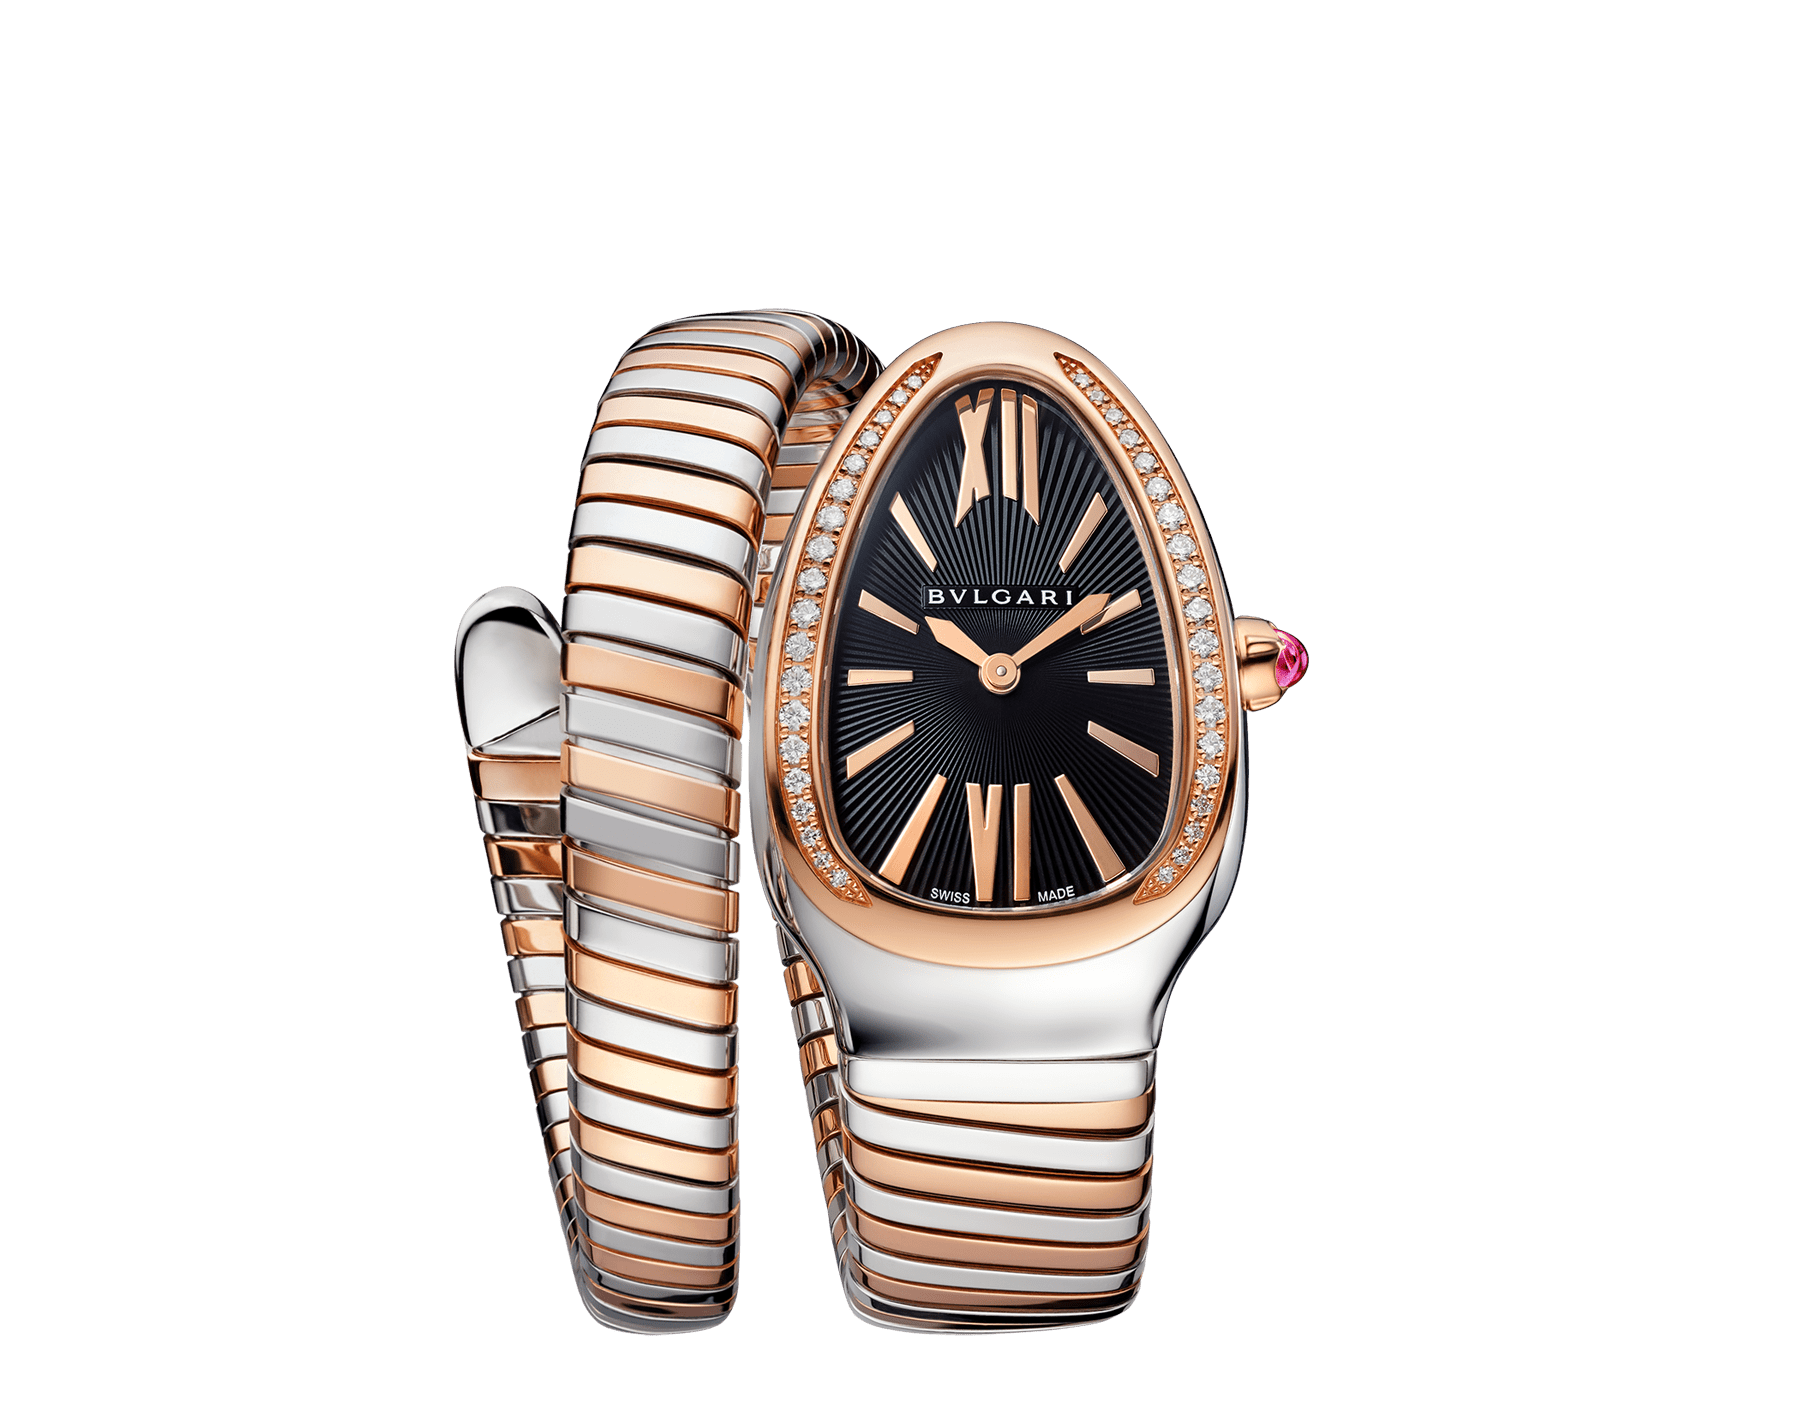 Serpenti Tubogas single spiral watch with stainless steel case, 18 kt rose gold bezel set with brilliant cut diamonds, black opaline dial, 18 kt rose gold and stainless steel bracelet. 102098 image 1